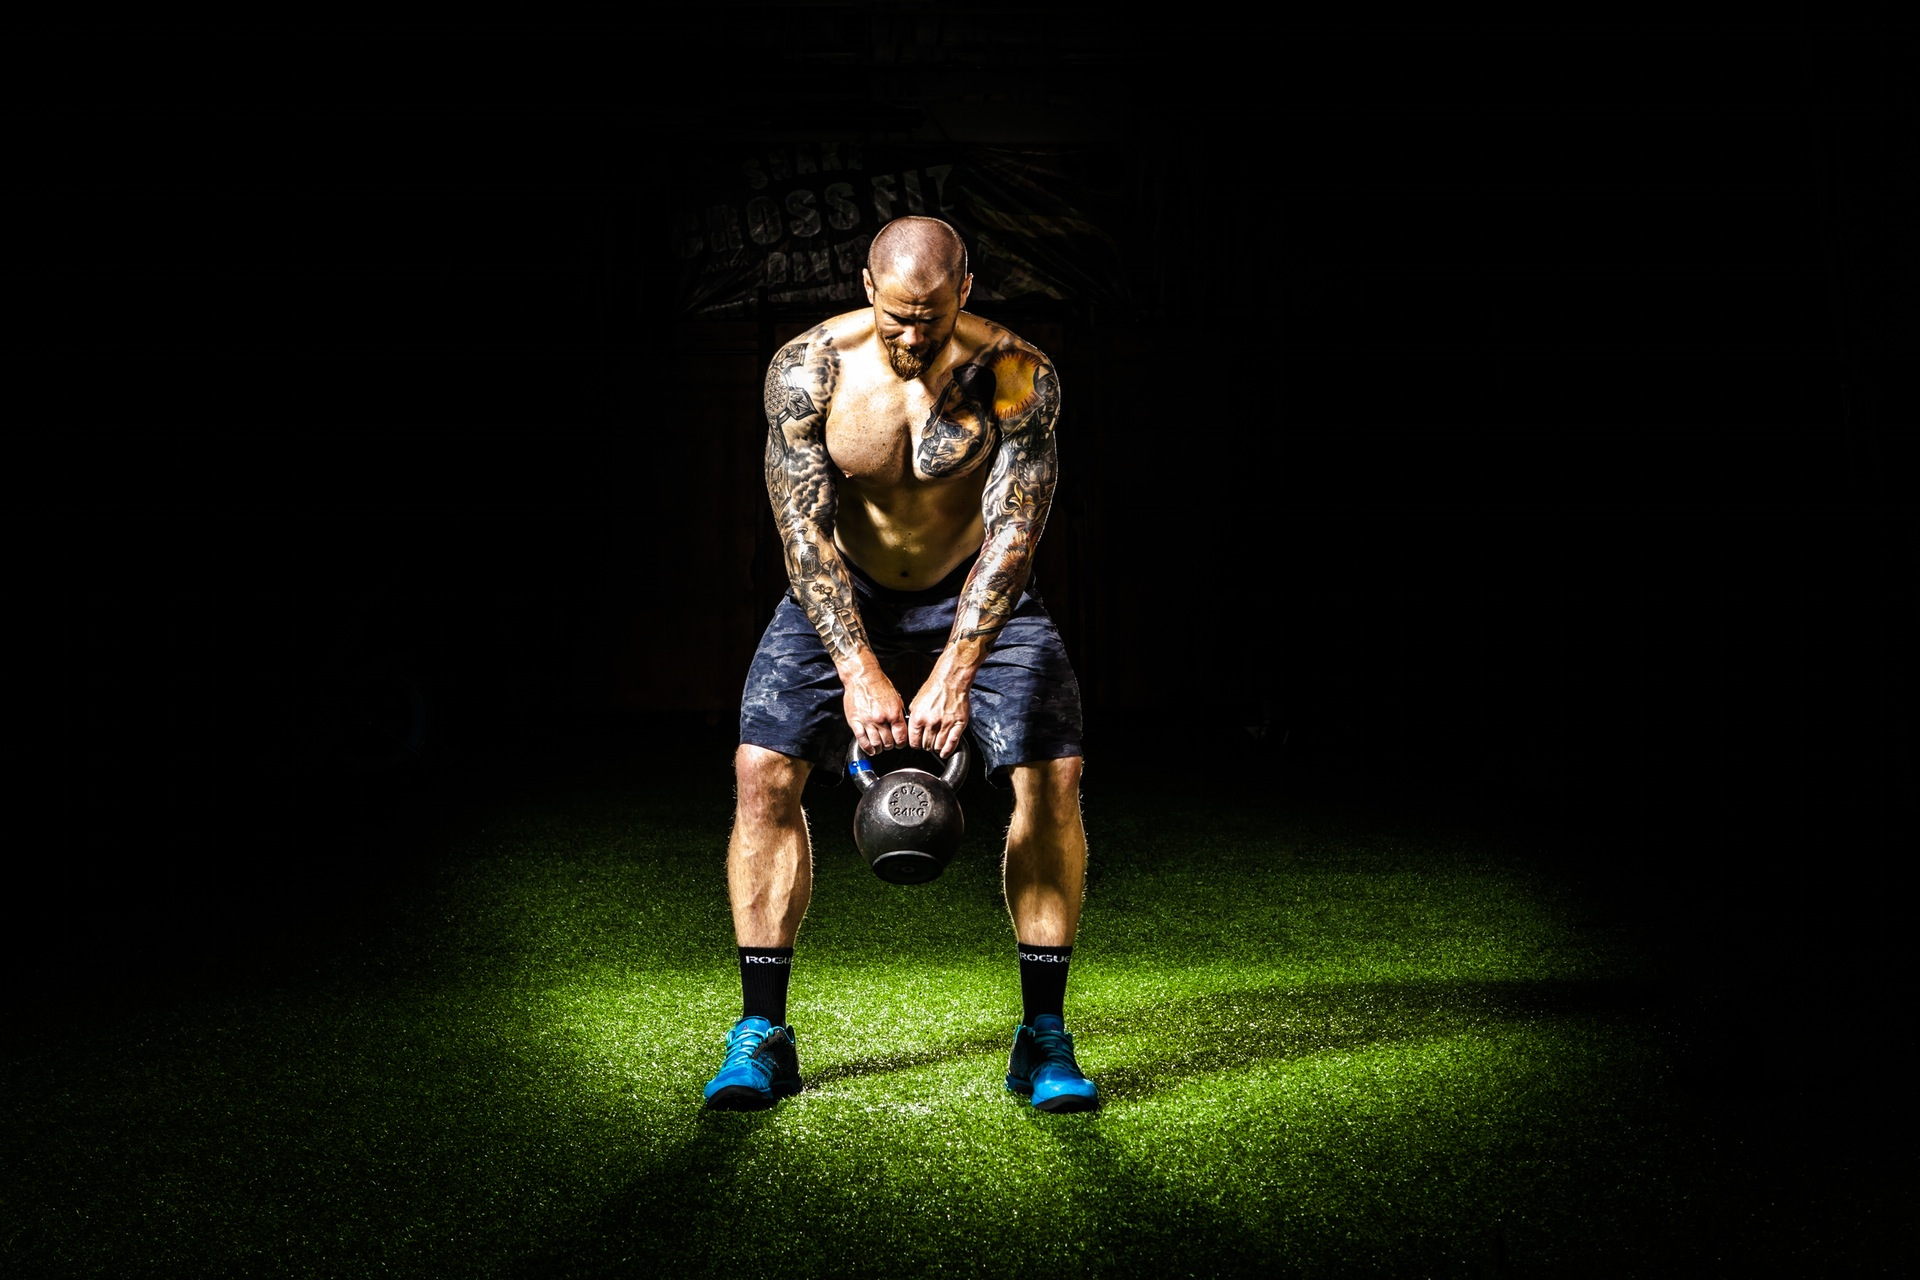 kettlebell training and what to look for when shopping for a gym